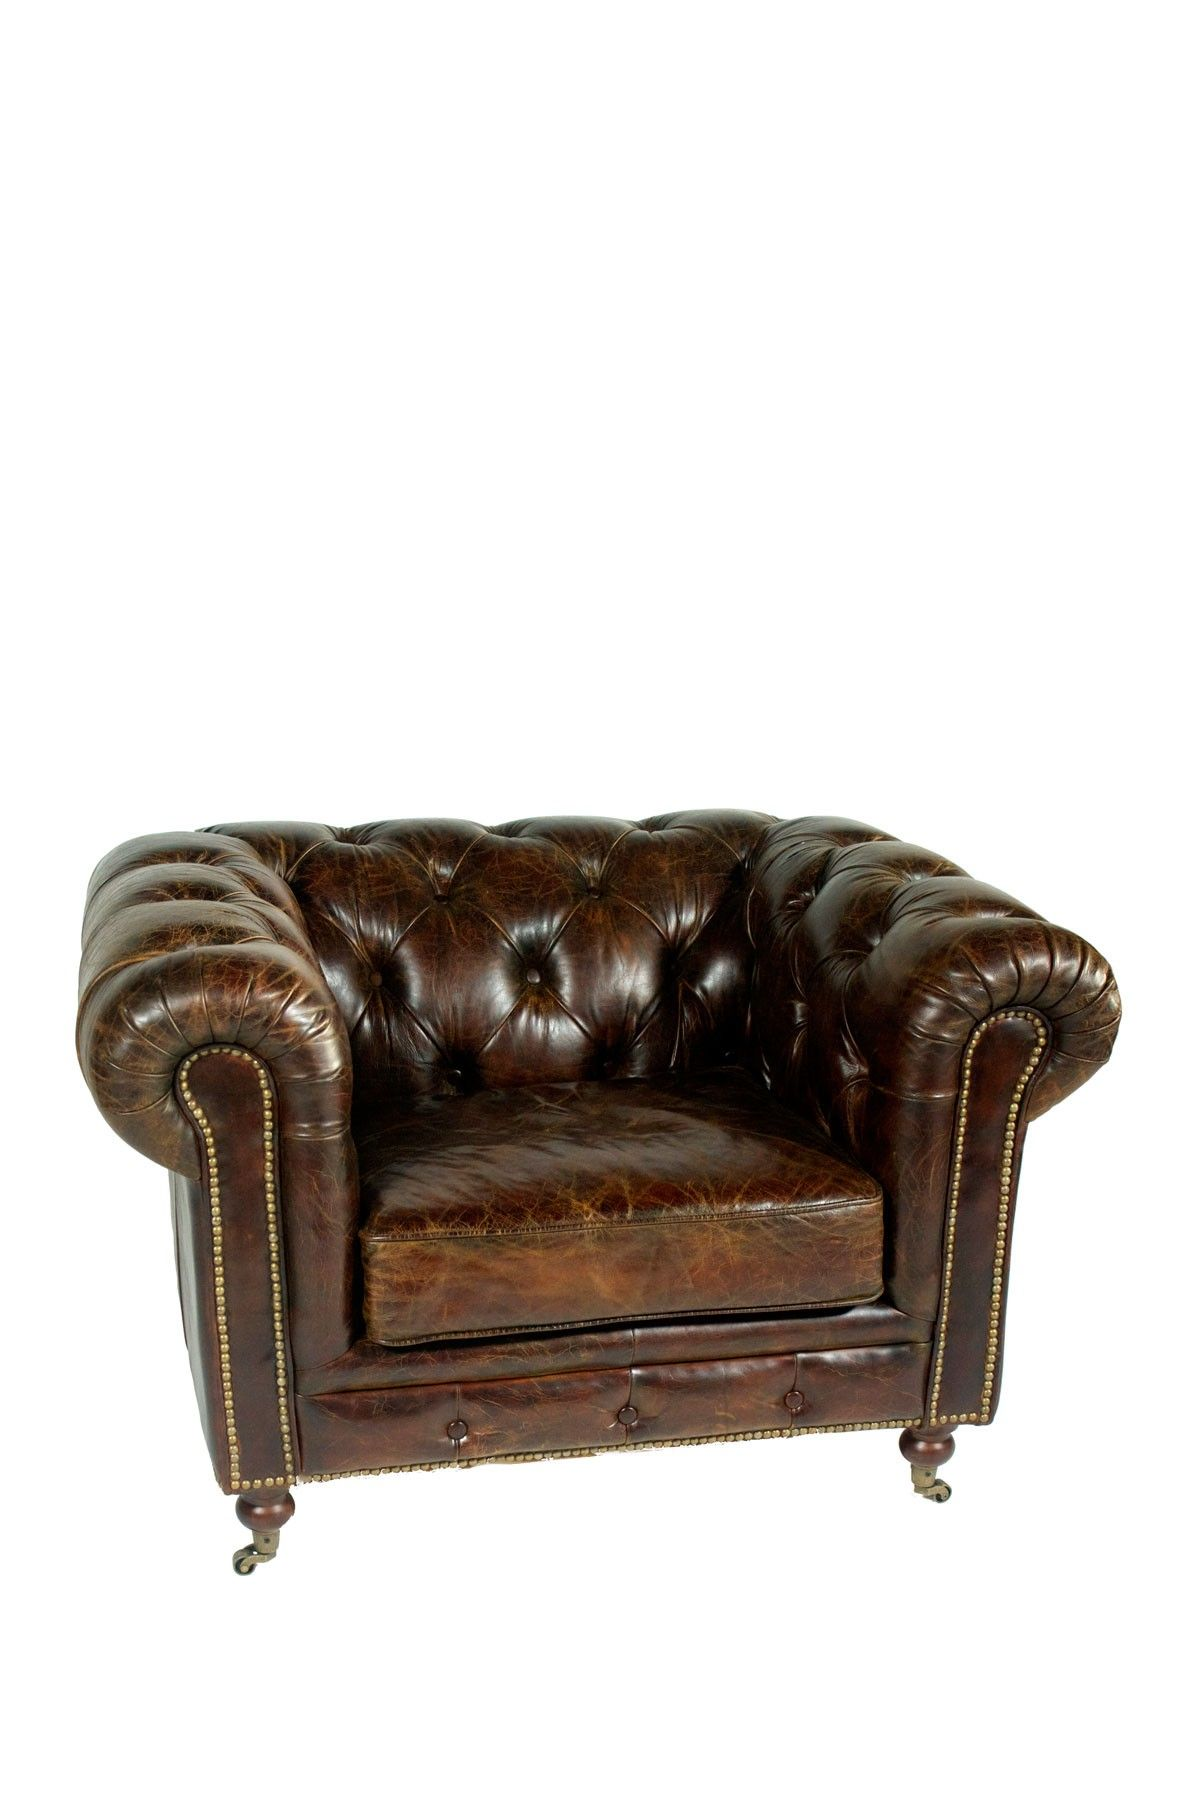 Chesterfield vintage leather sofa chair